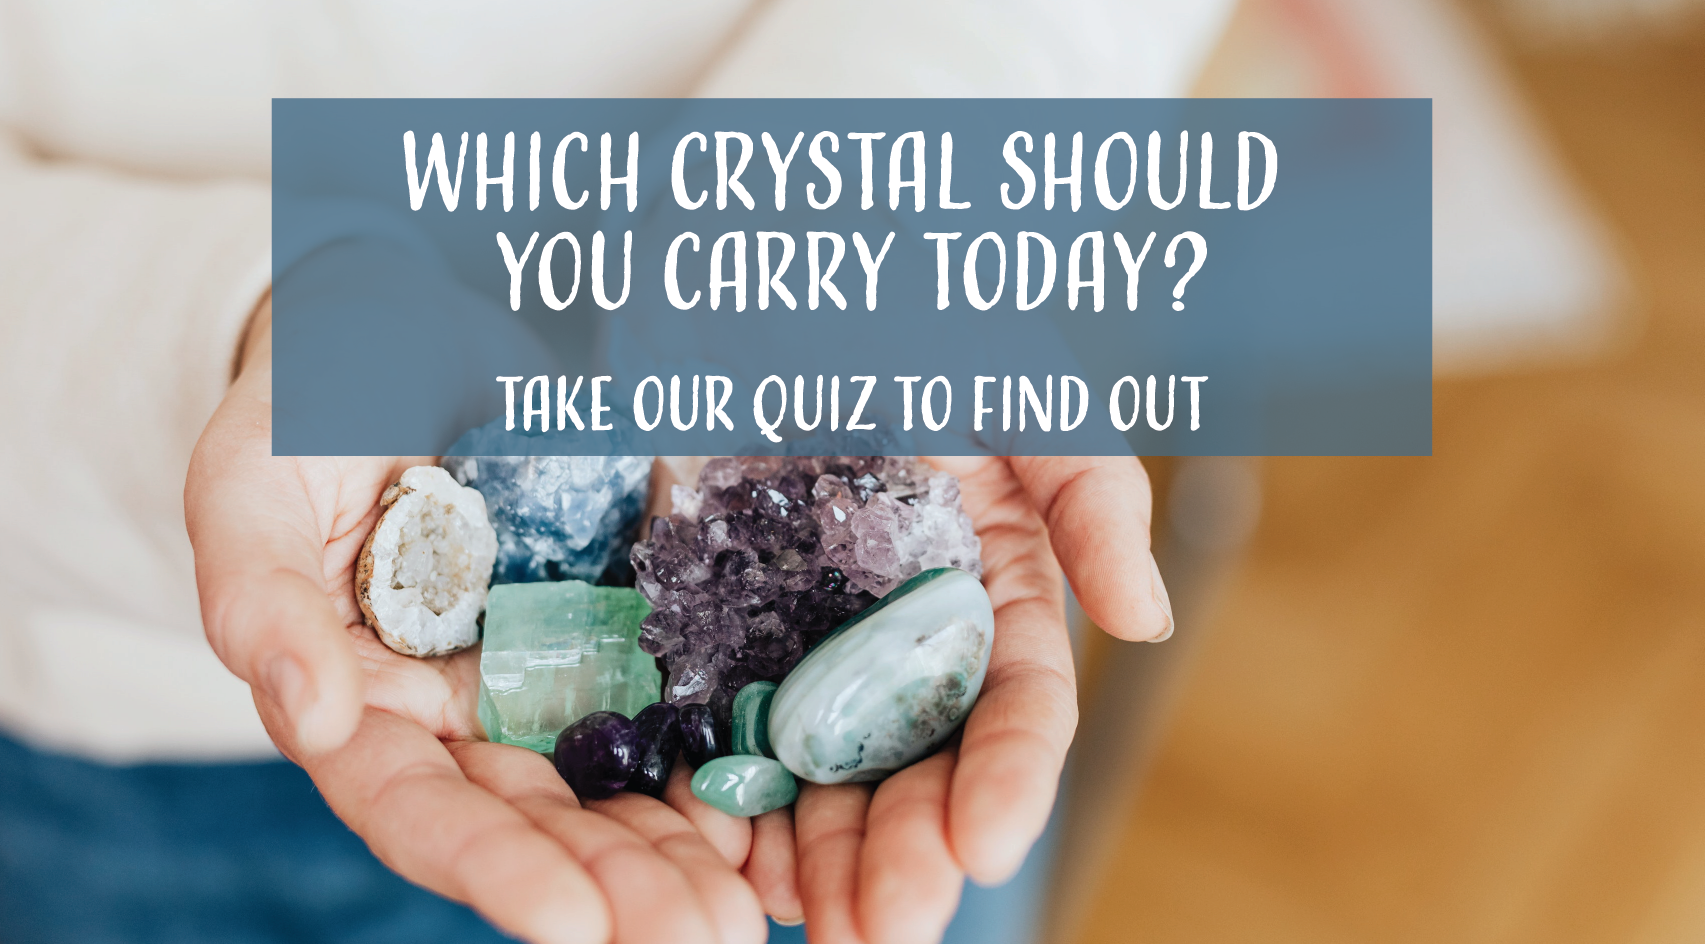 Which crystal should I carry today quiz